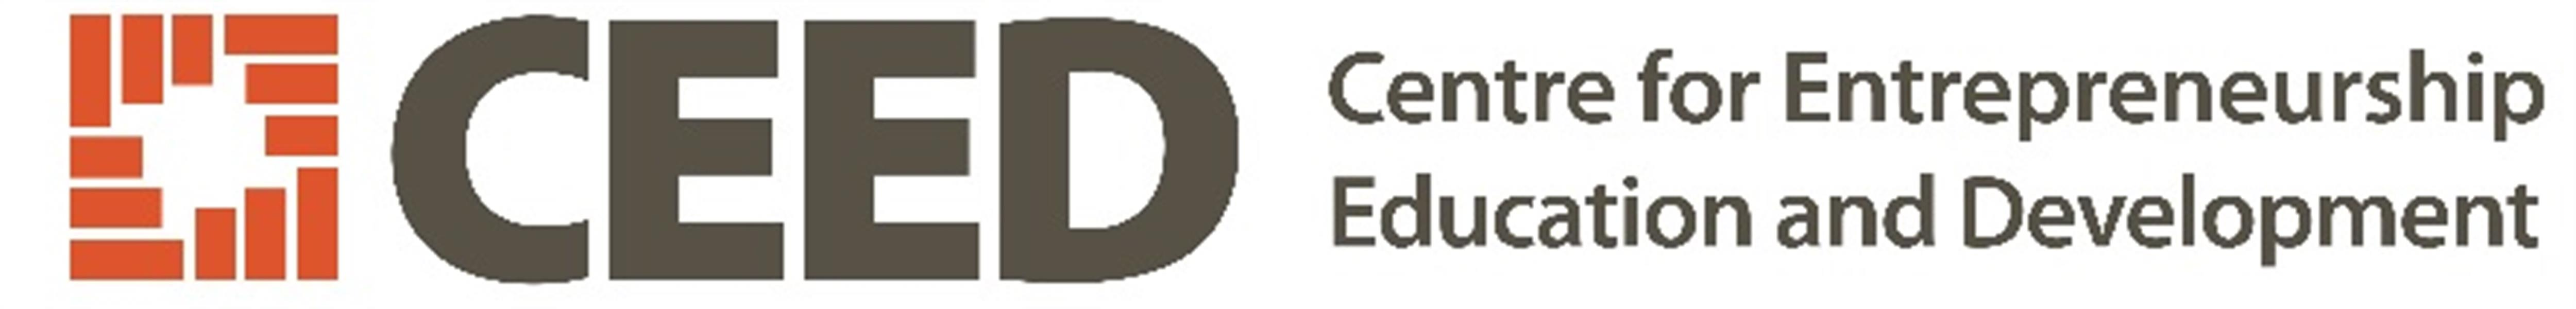 Center for Entrepreneurship Education & Development